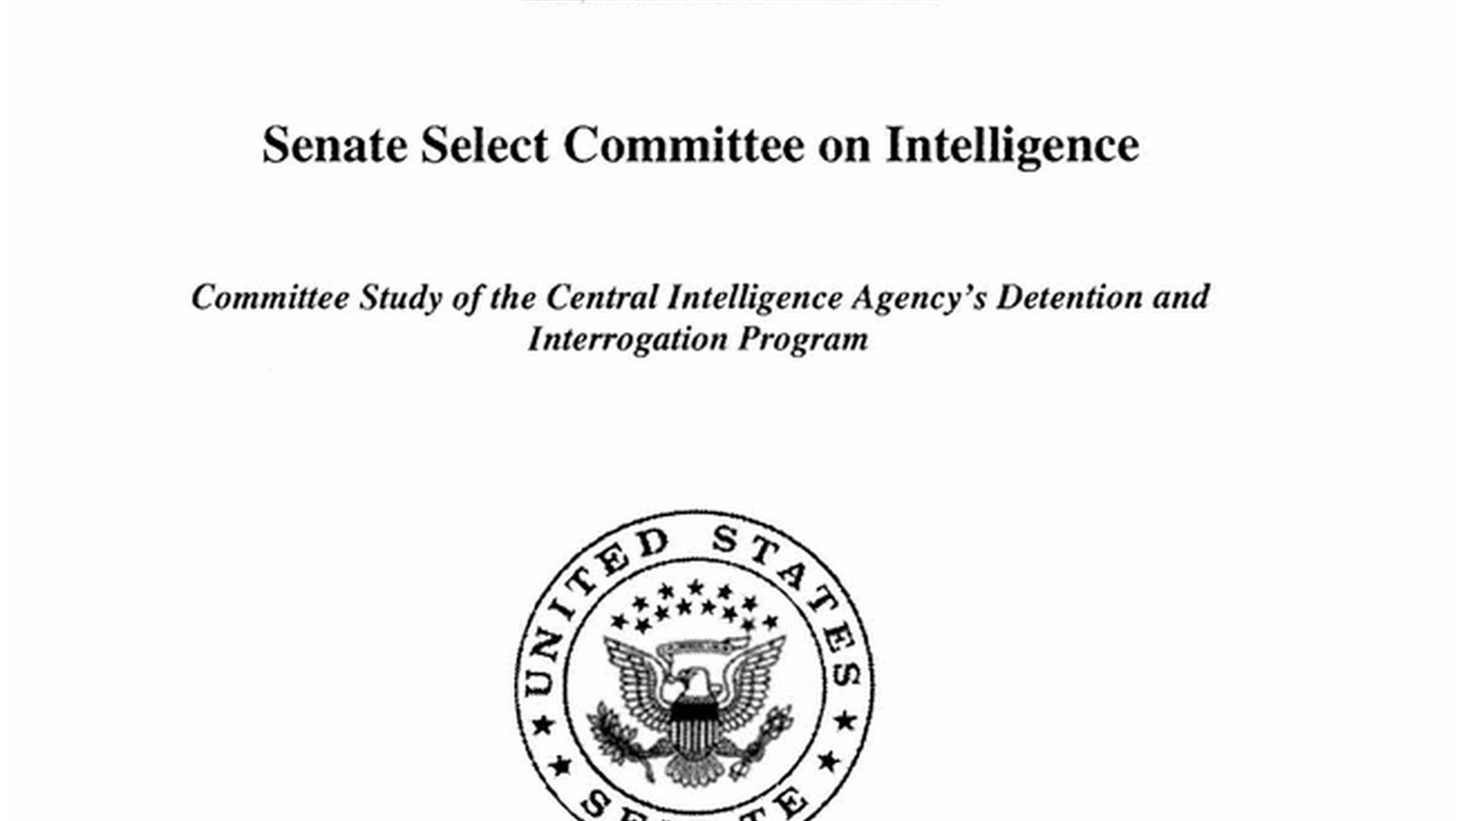 We take an in-depth look at the Senate's long-awaited, scathing report on the CIA's methods for interrogating terror suspects in the aftermath of 9/11. What's in the report, and could the CIA have been justified in its harsh tactics?